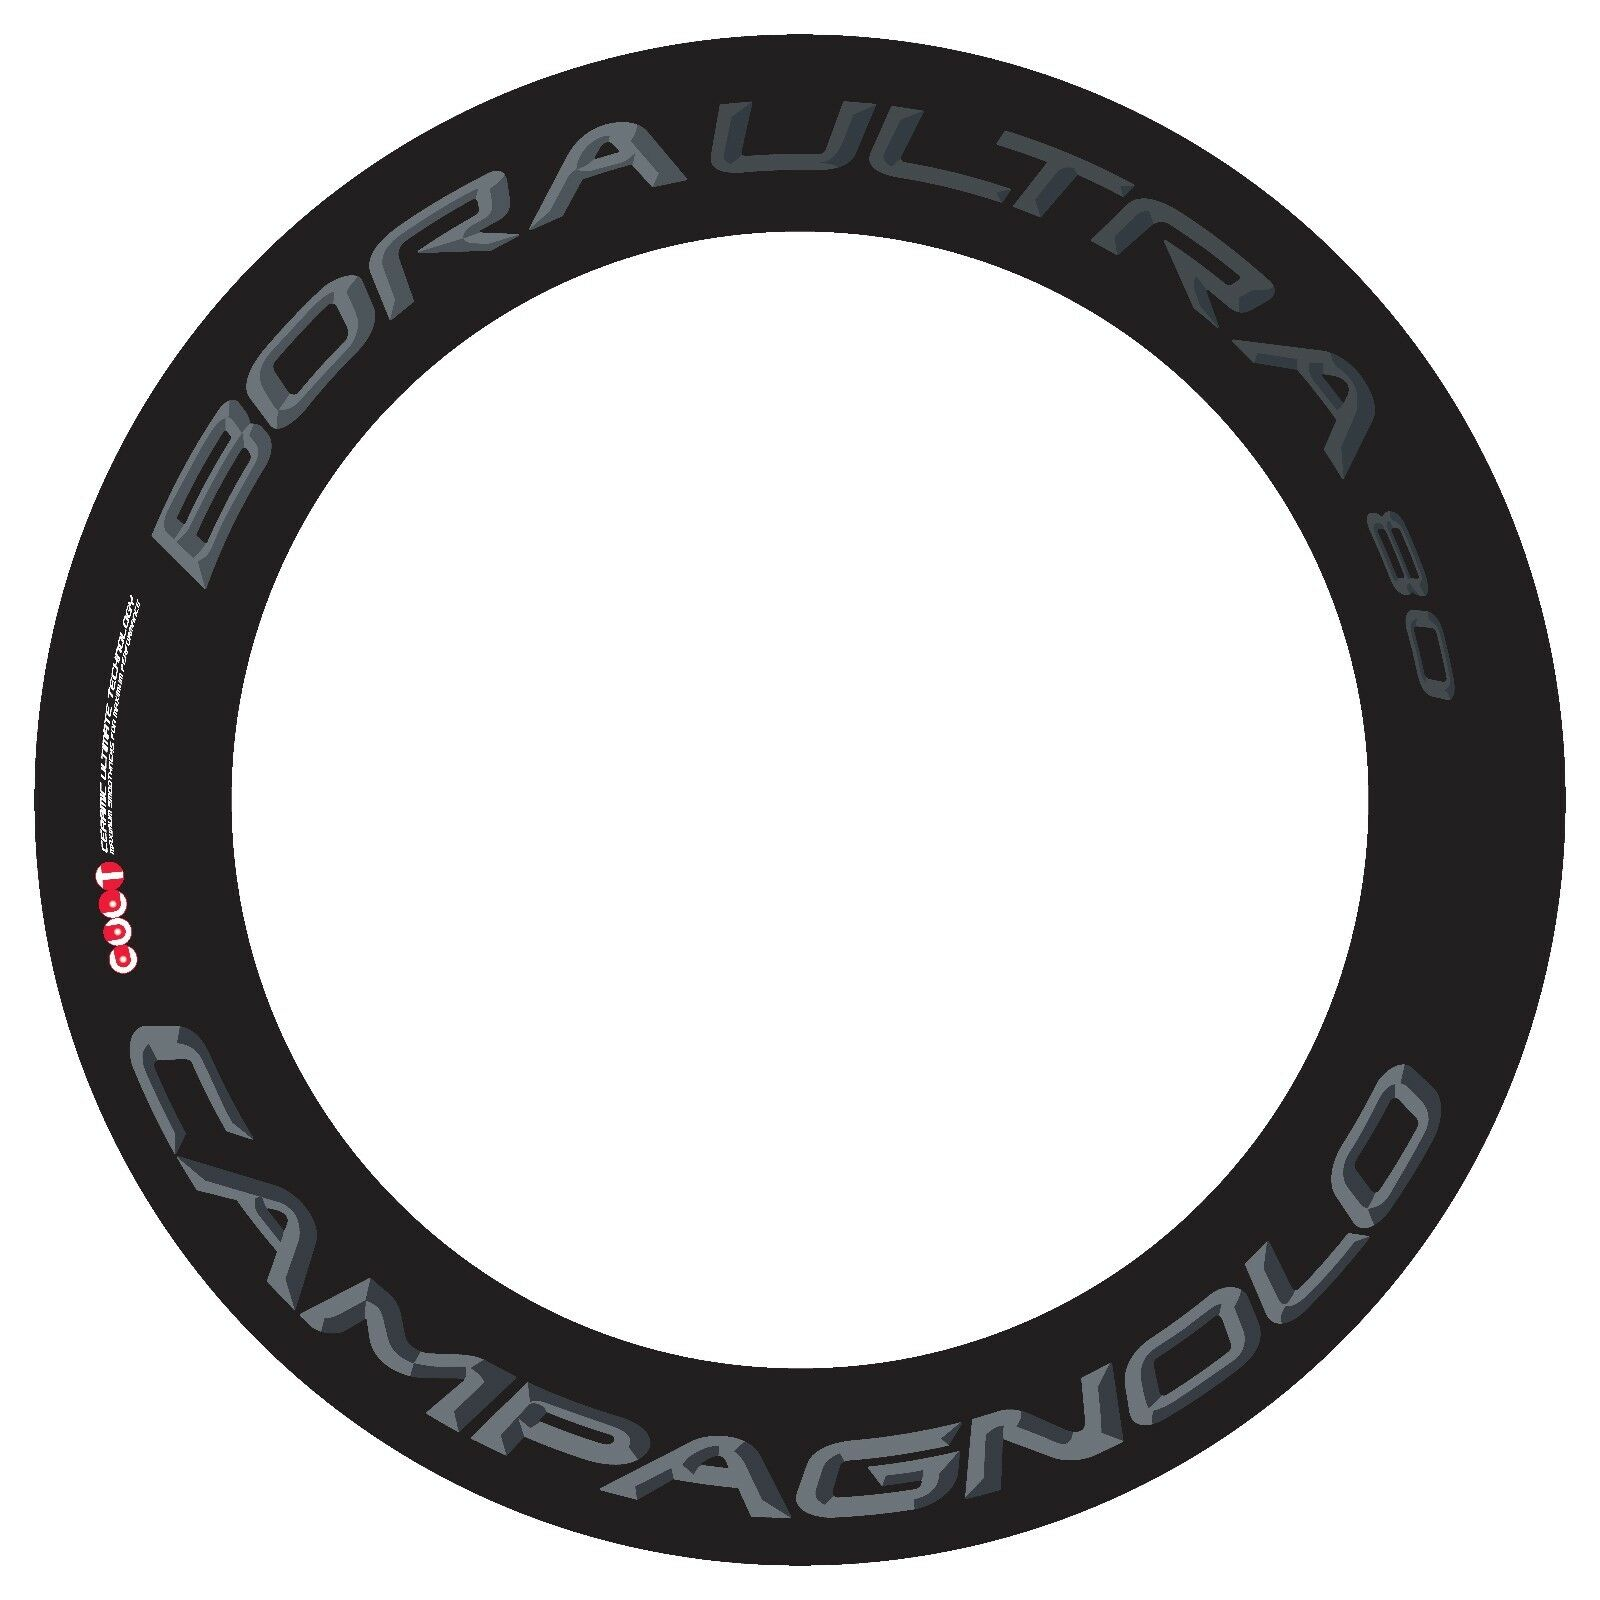 CAMPAGNOLO BORA ULTRA 80 DARK LABEL REPLACEMENT RIM DECAL SET FOR  2 RIMS